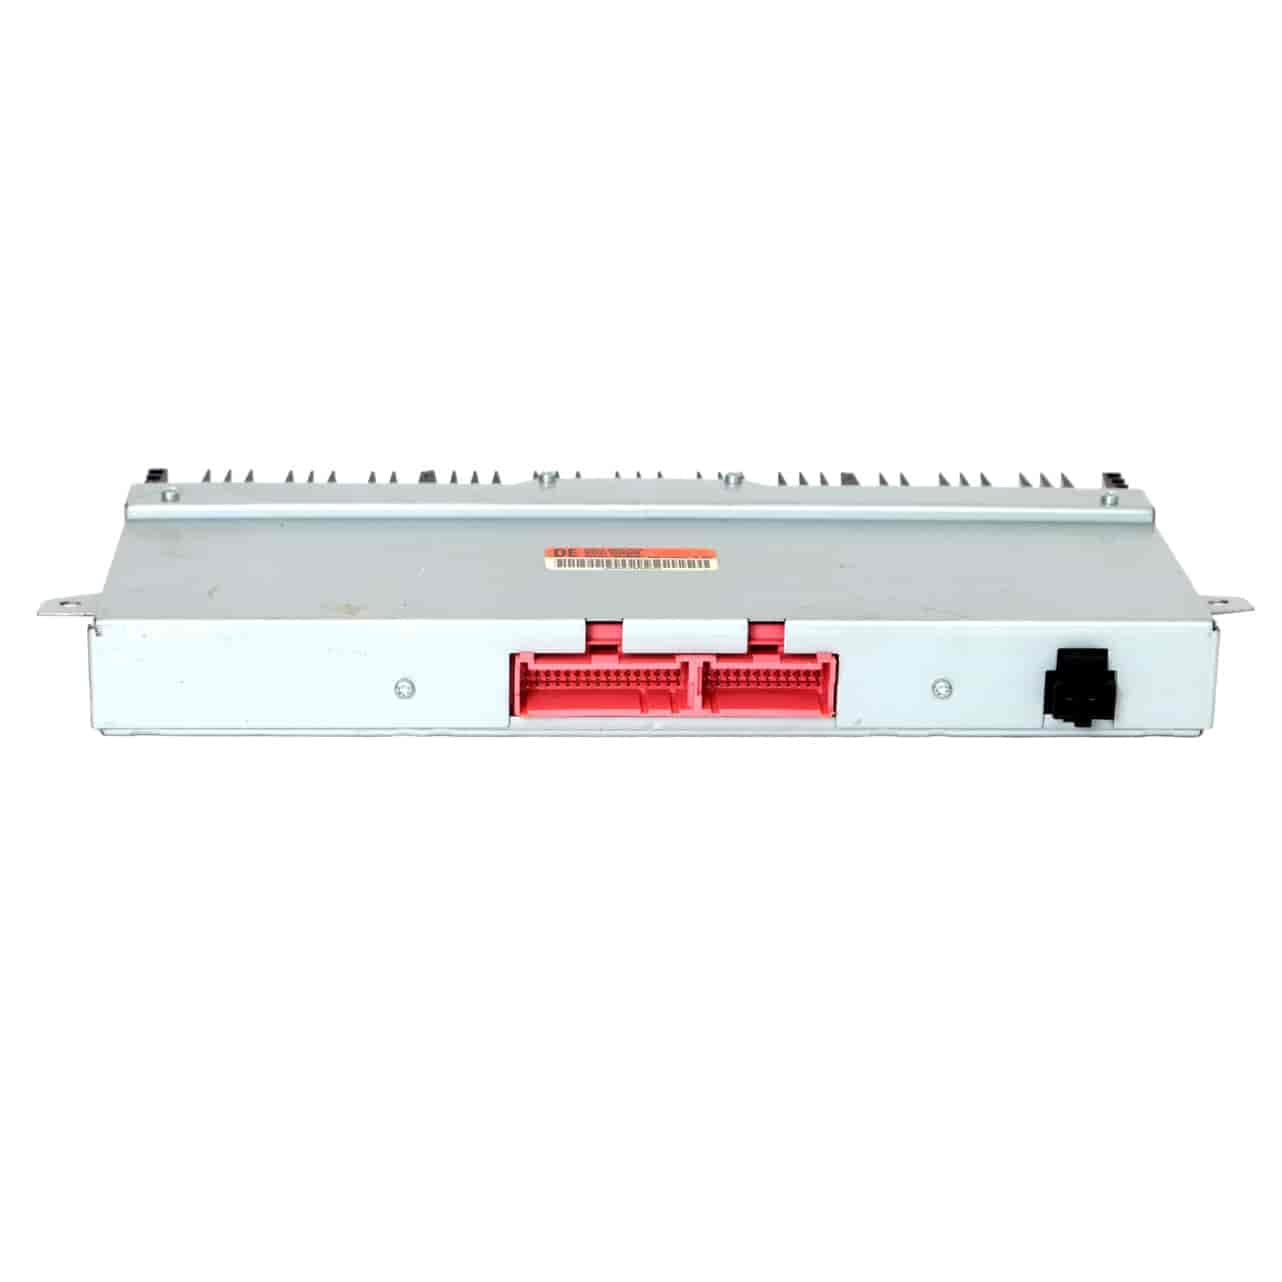 1 Factory Radio Factory Replacement Amplifier for 1998-1999 Cadillac Deville